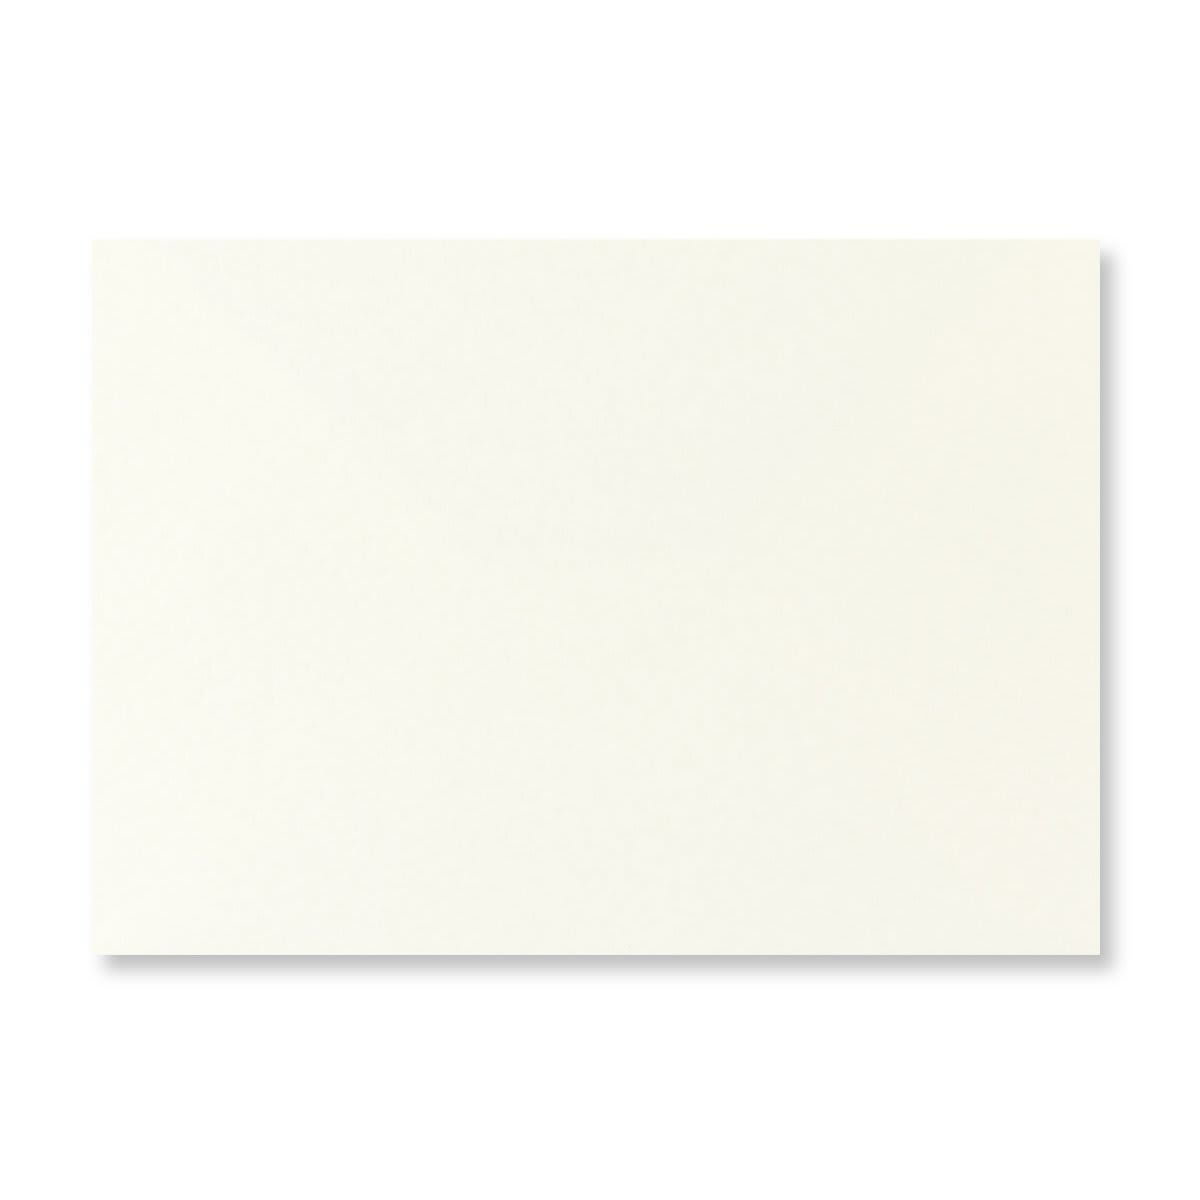 IVORY HAMMER EFFECT 125 x 175 mm ENVELOPES (i6)